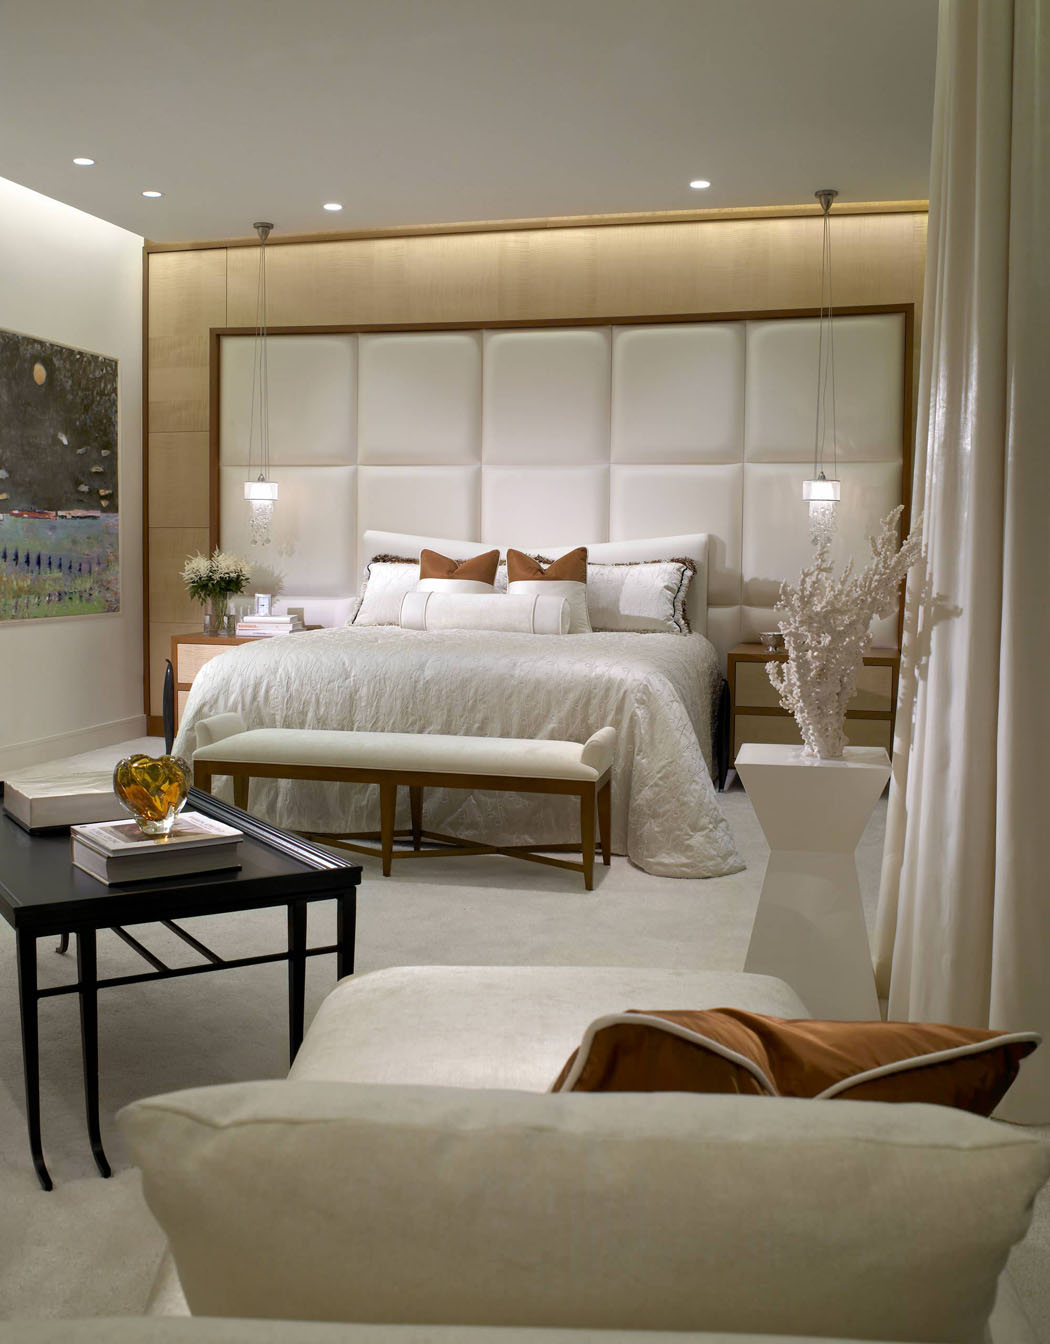 Big Bedroom Decorating Ideas Résidence De Vacances Luxueuse à Miami Avec Splendide Vue